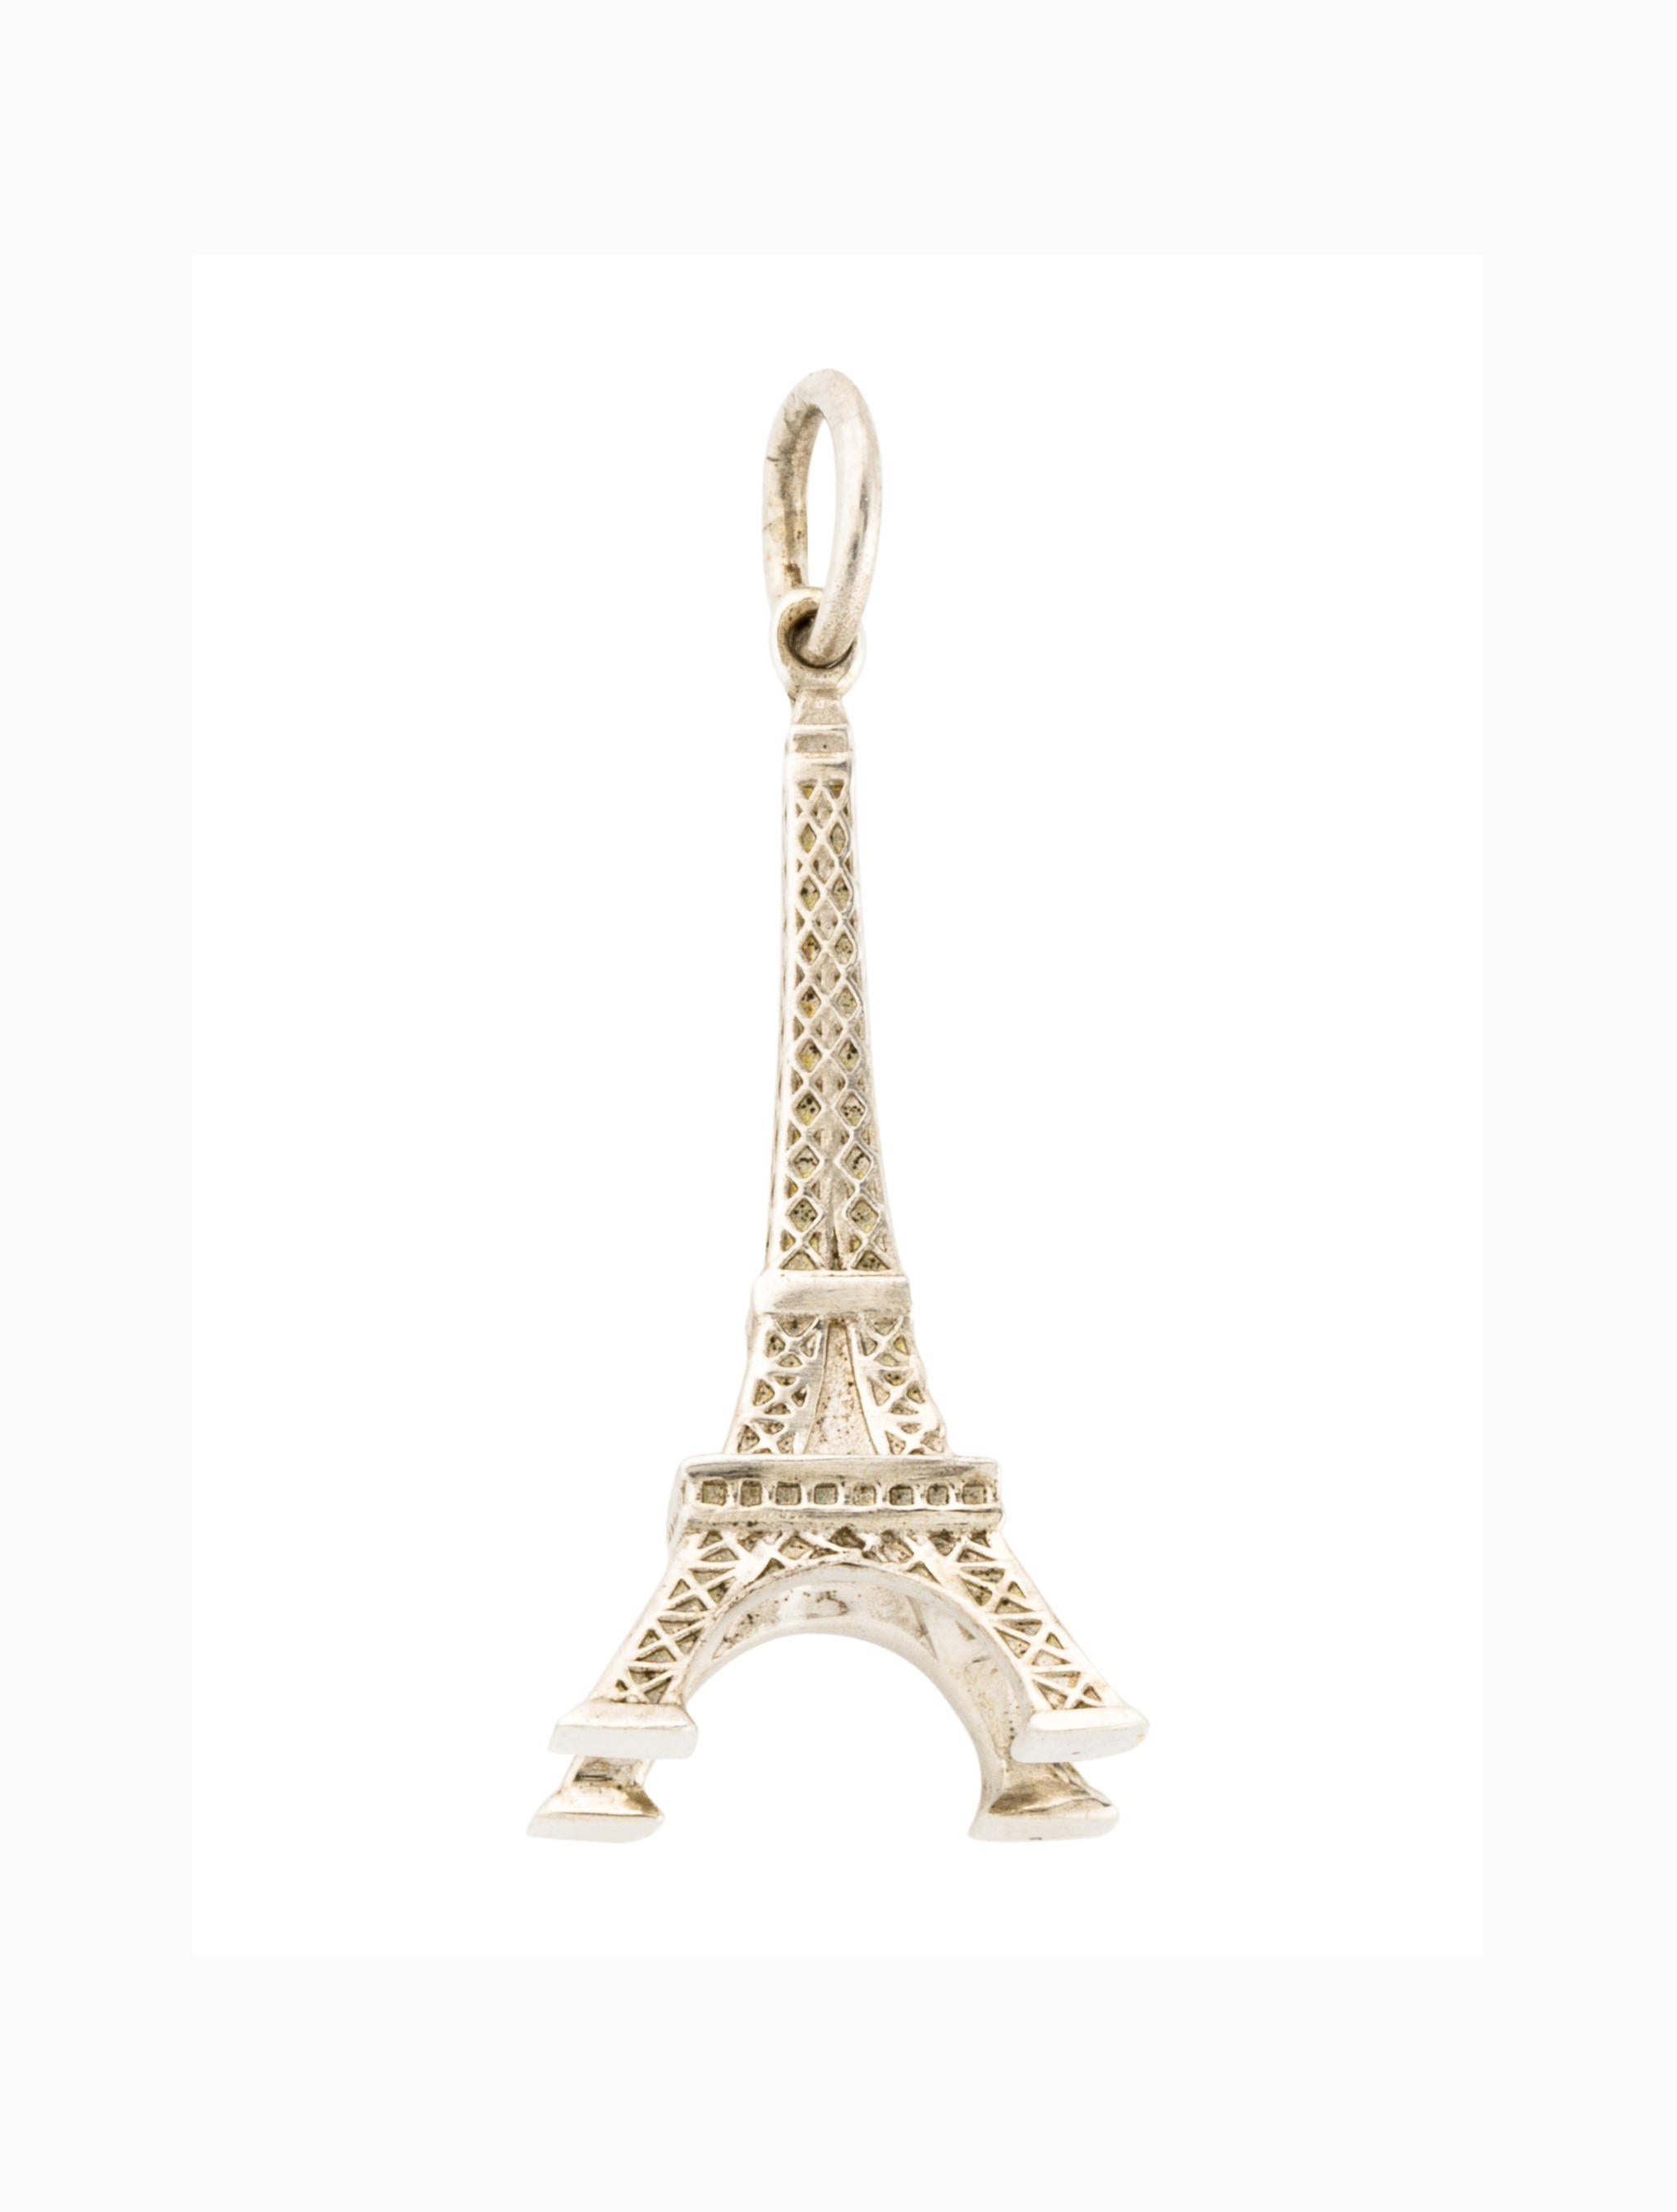 Gold Eiffel Tower Bracelet weaved with Black cord perfect gift for any occasion